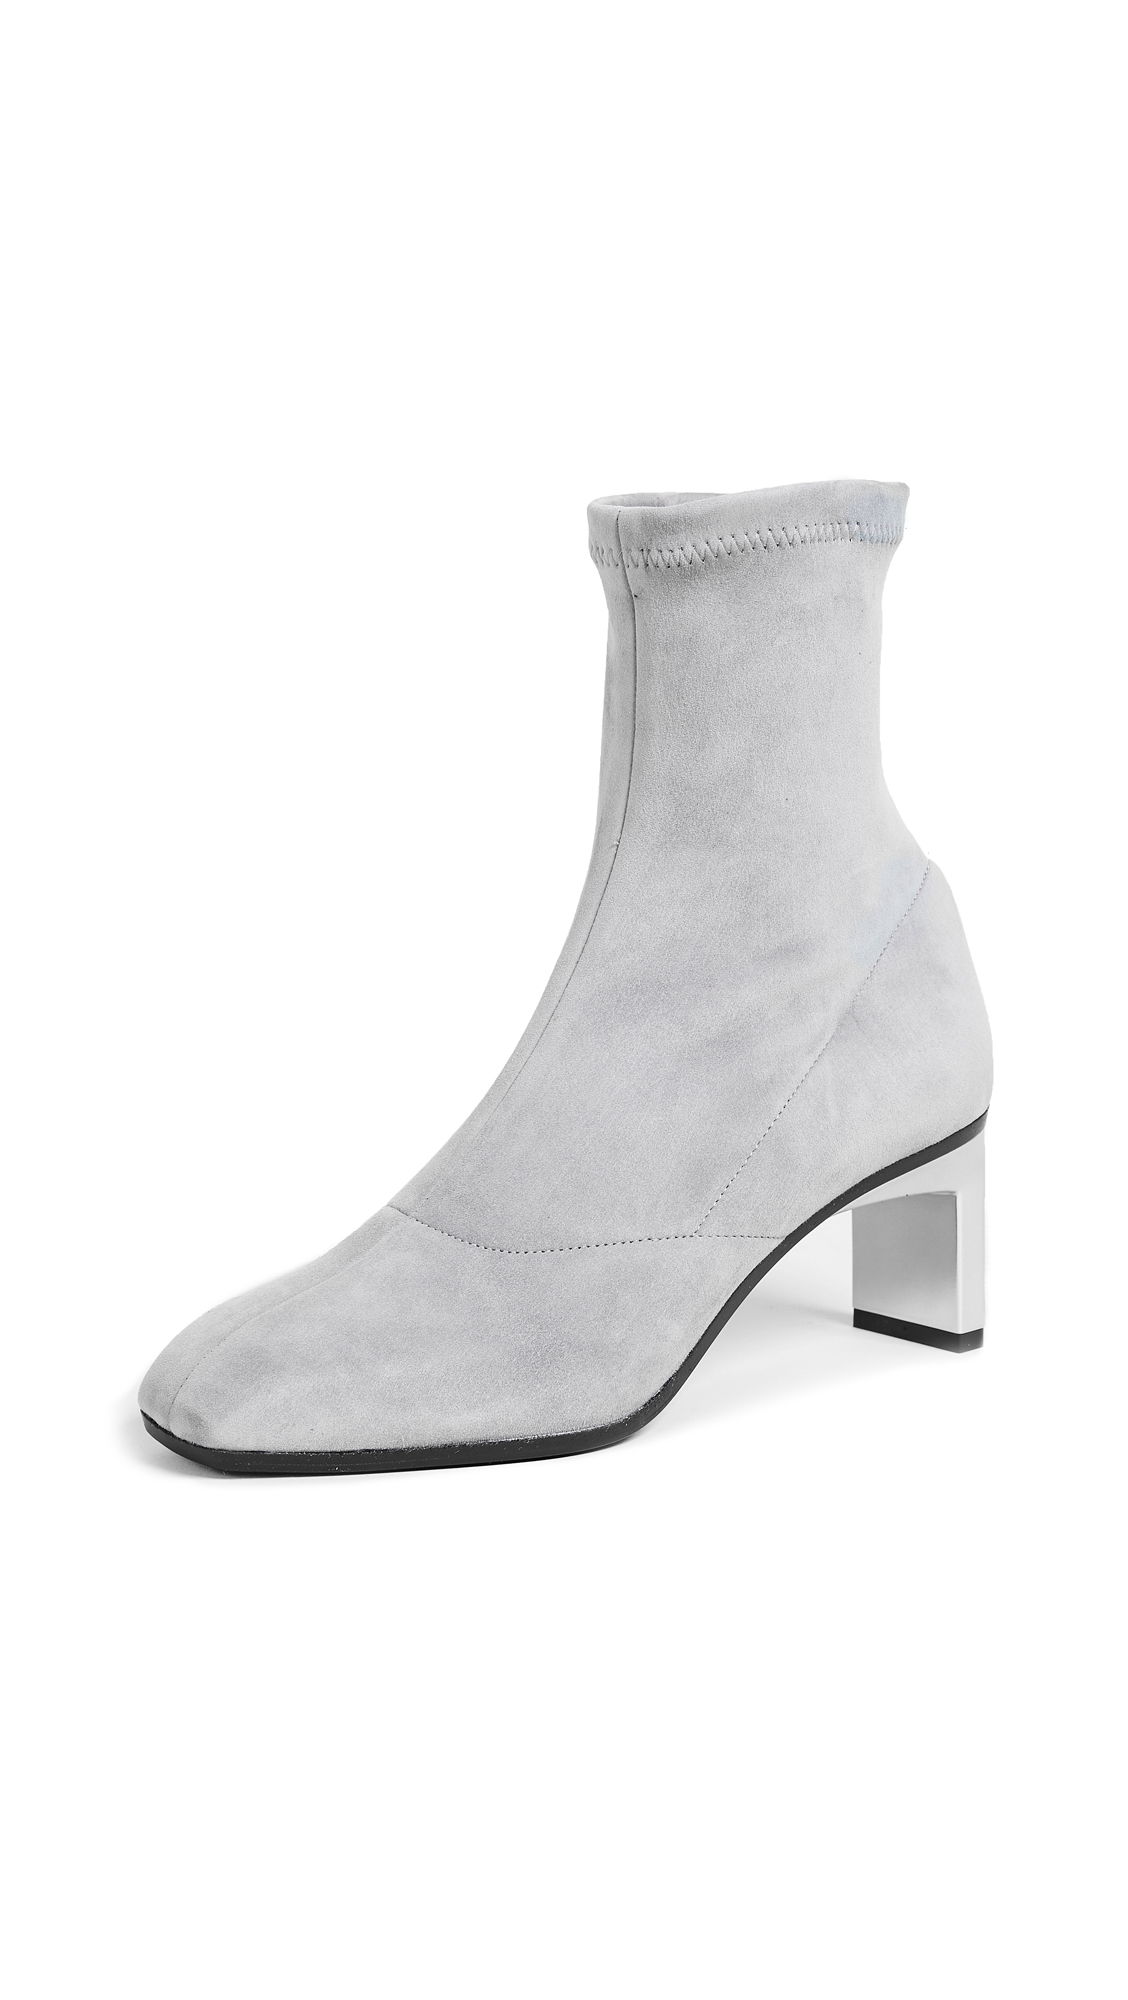 3.1 Phillip Lim Blade Ankle Booties - Fog